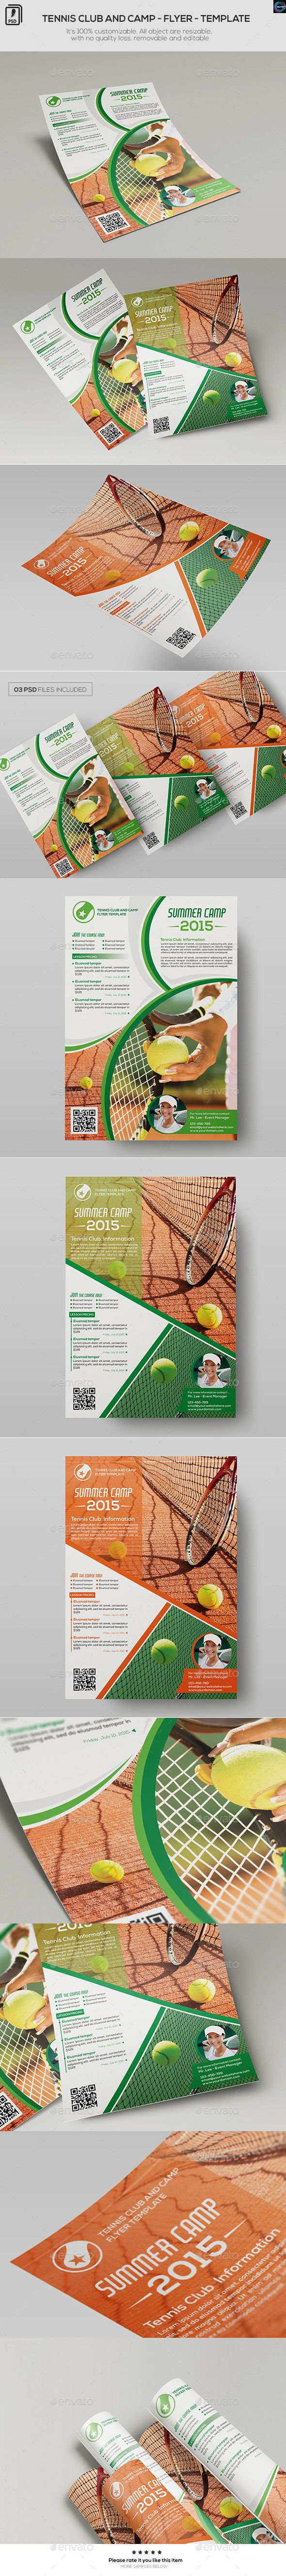 Tennis club and camp flyer template tennis clubs flyer tennis club and camp flyer template fandeluxe Gallery